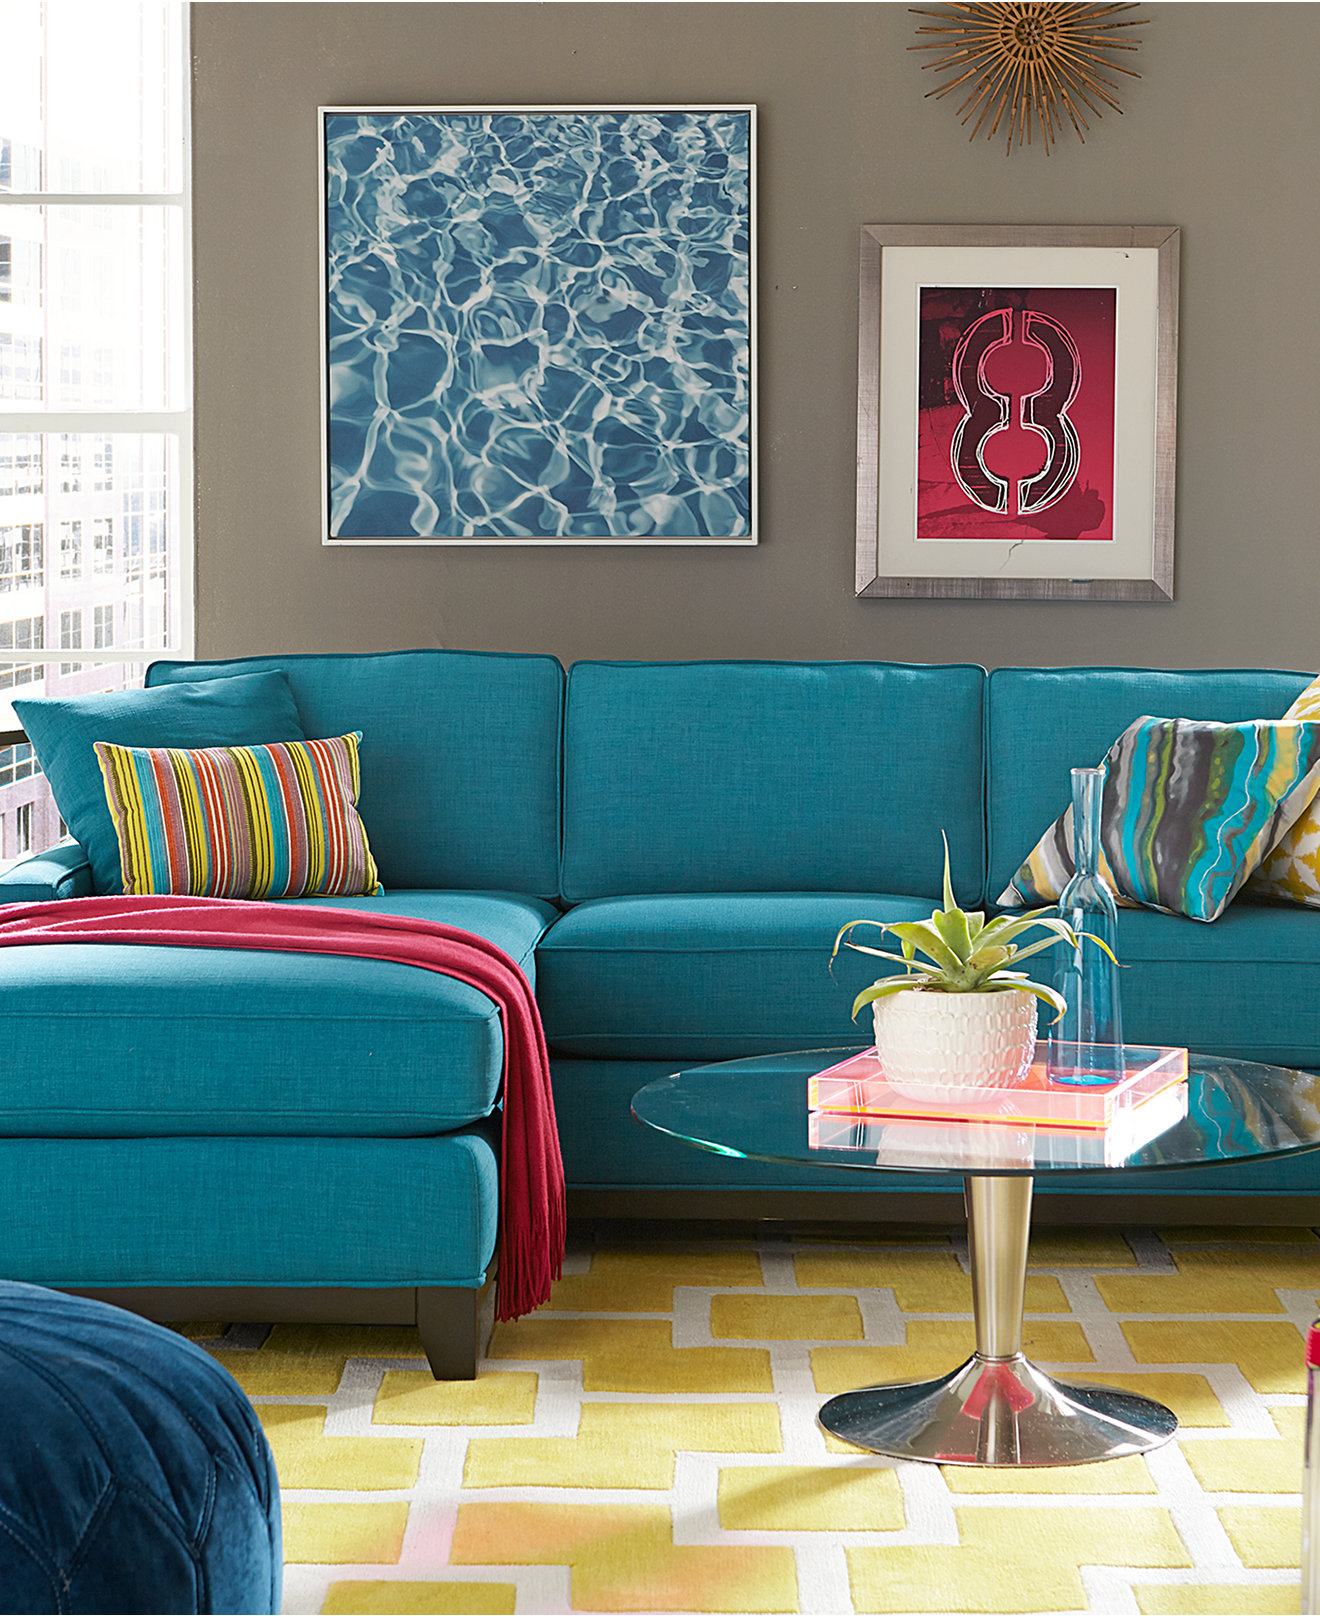 Gorgeous Turquoise Sectional Sofa Clearance Idea Design With Round Glass  Coffee Table And Yellow Patterned Area